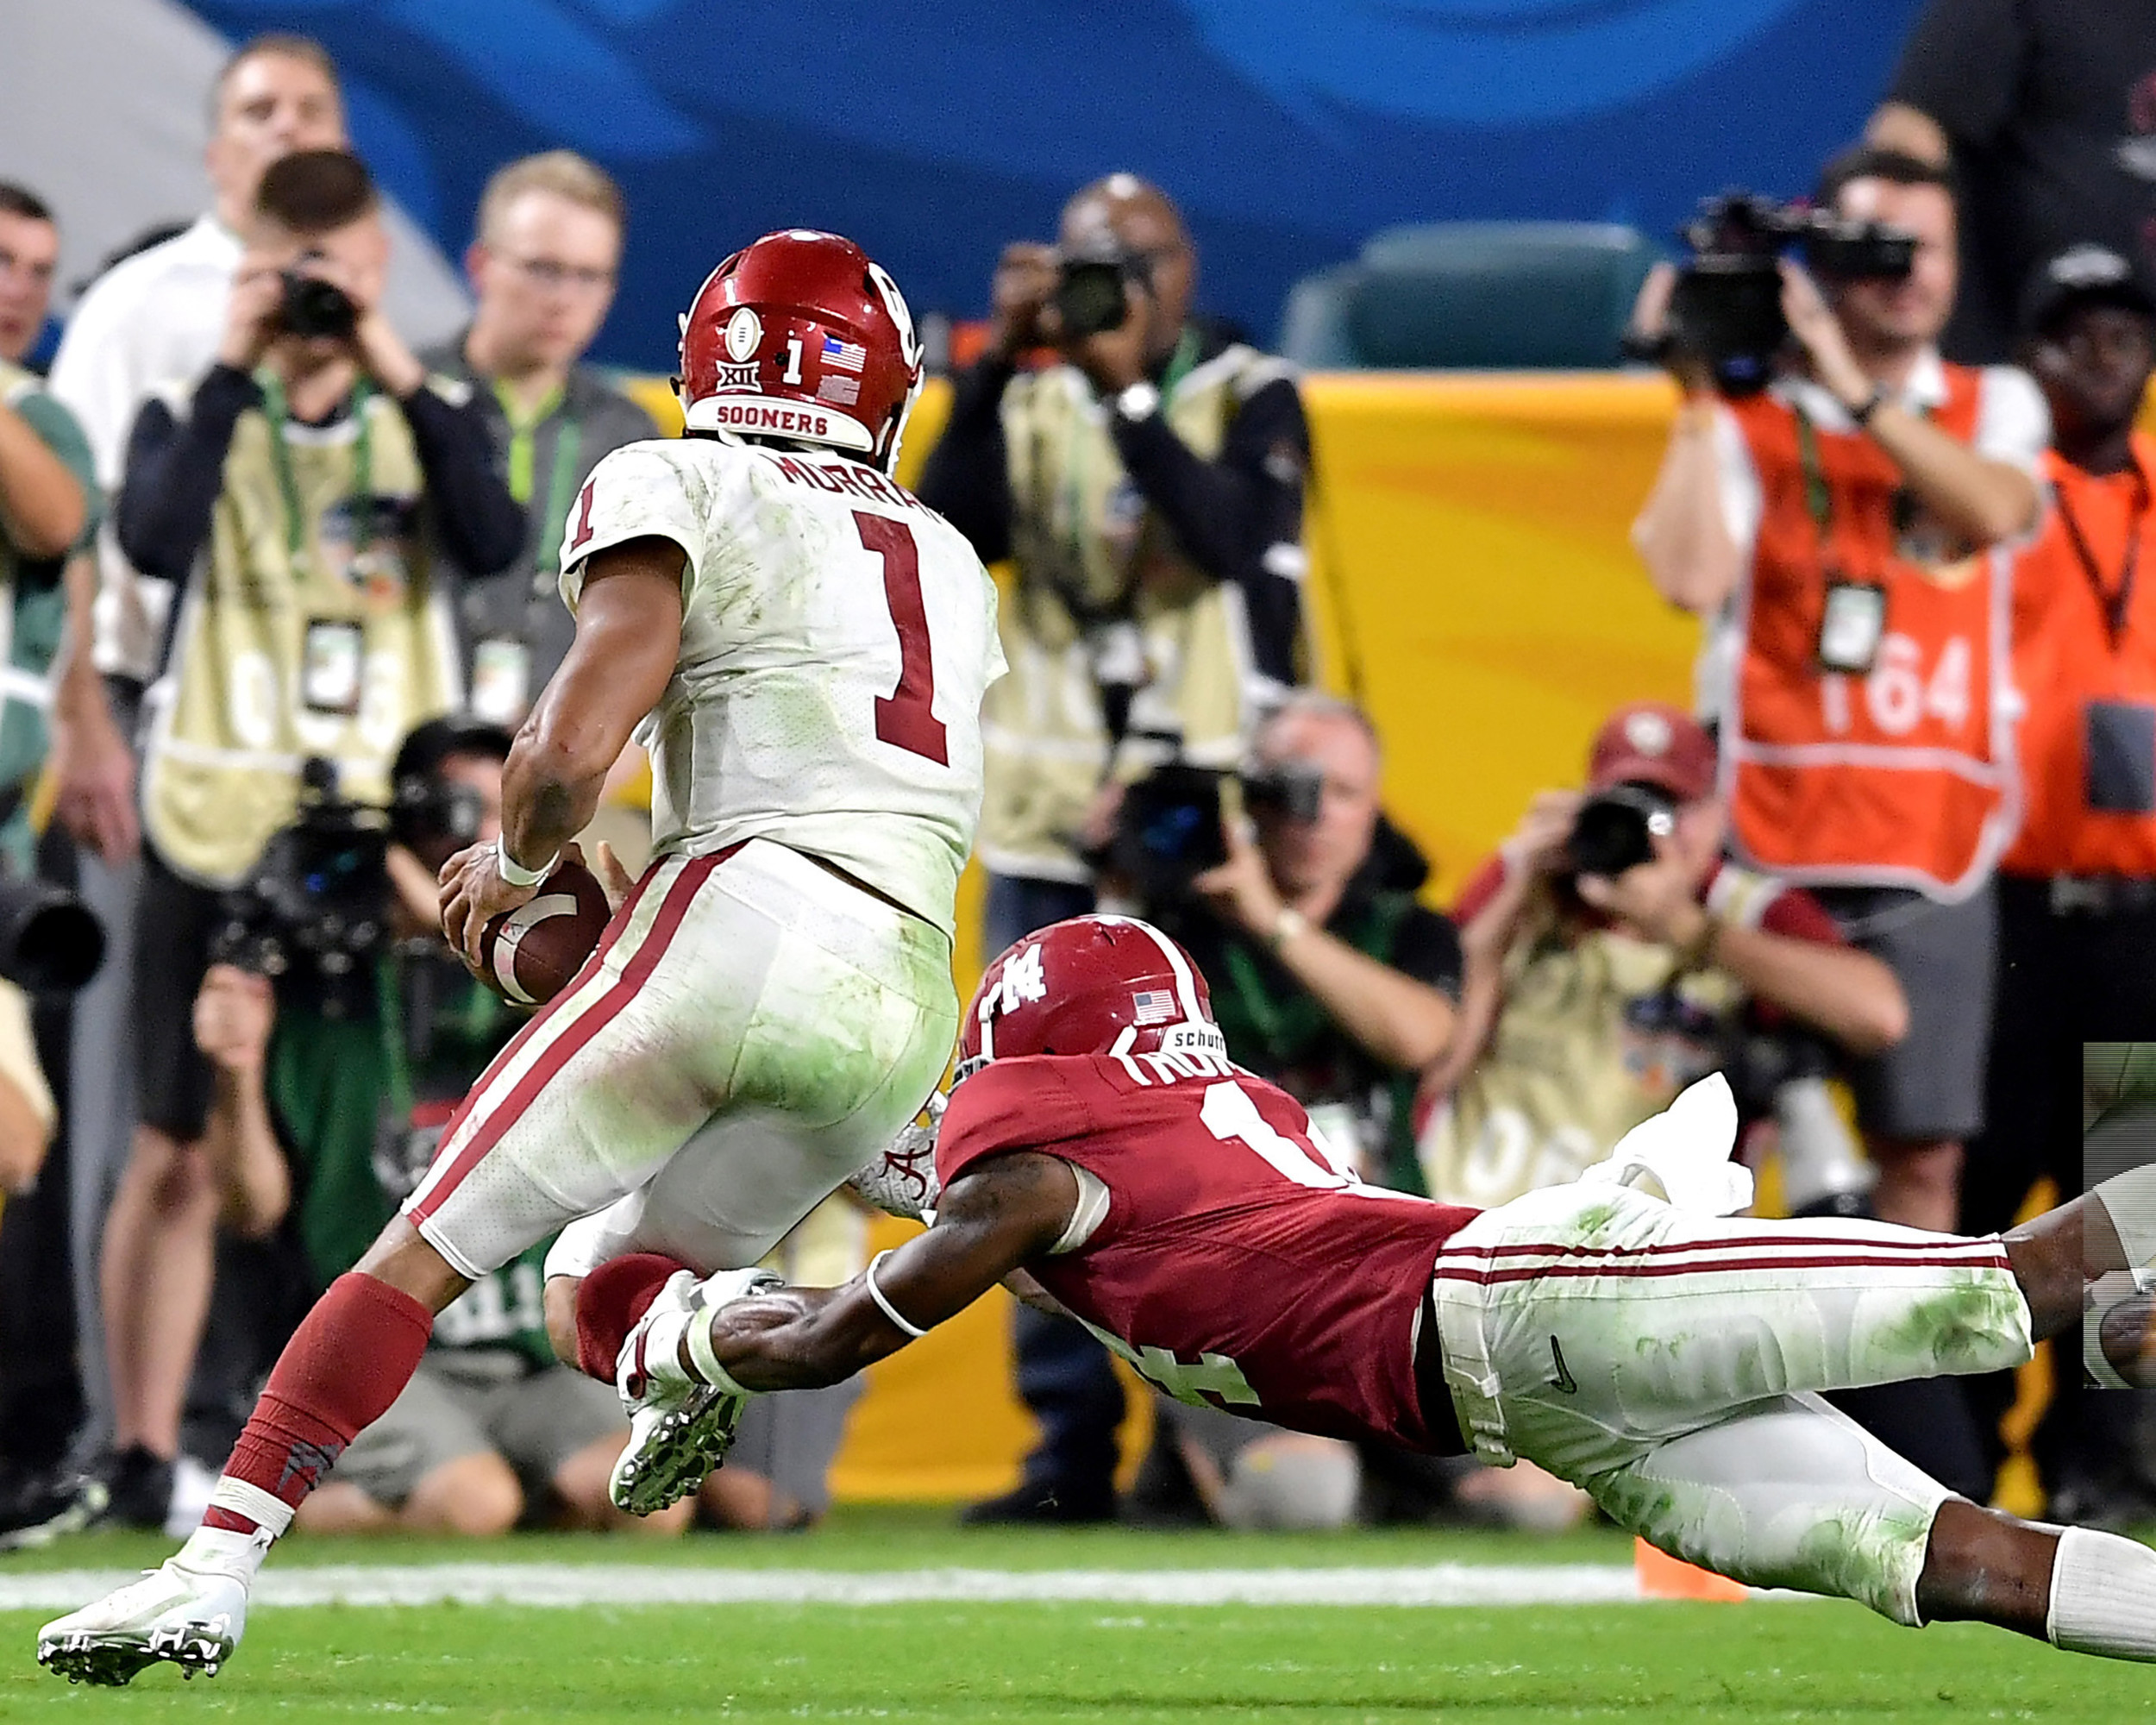 Alabama Crimson Tide defensive back Deionte Thompson (14) gets the shoestrings of Oklahoma Sooners quarterback Kyler Murray (1) during the second half of the Capital One Orange Bowl at Hard Rock Stadium in Miami Gardens, Fla., Saturday, Dec. 29, 2018. Alabama wins 45-34. (Photo by Lee Walls)